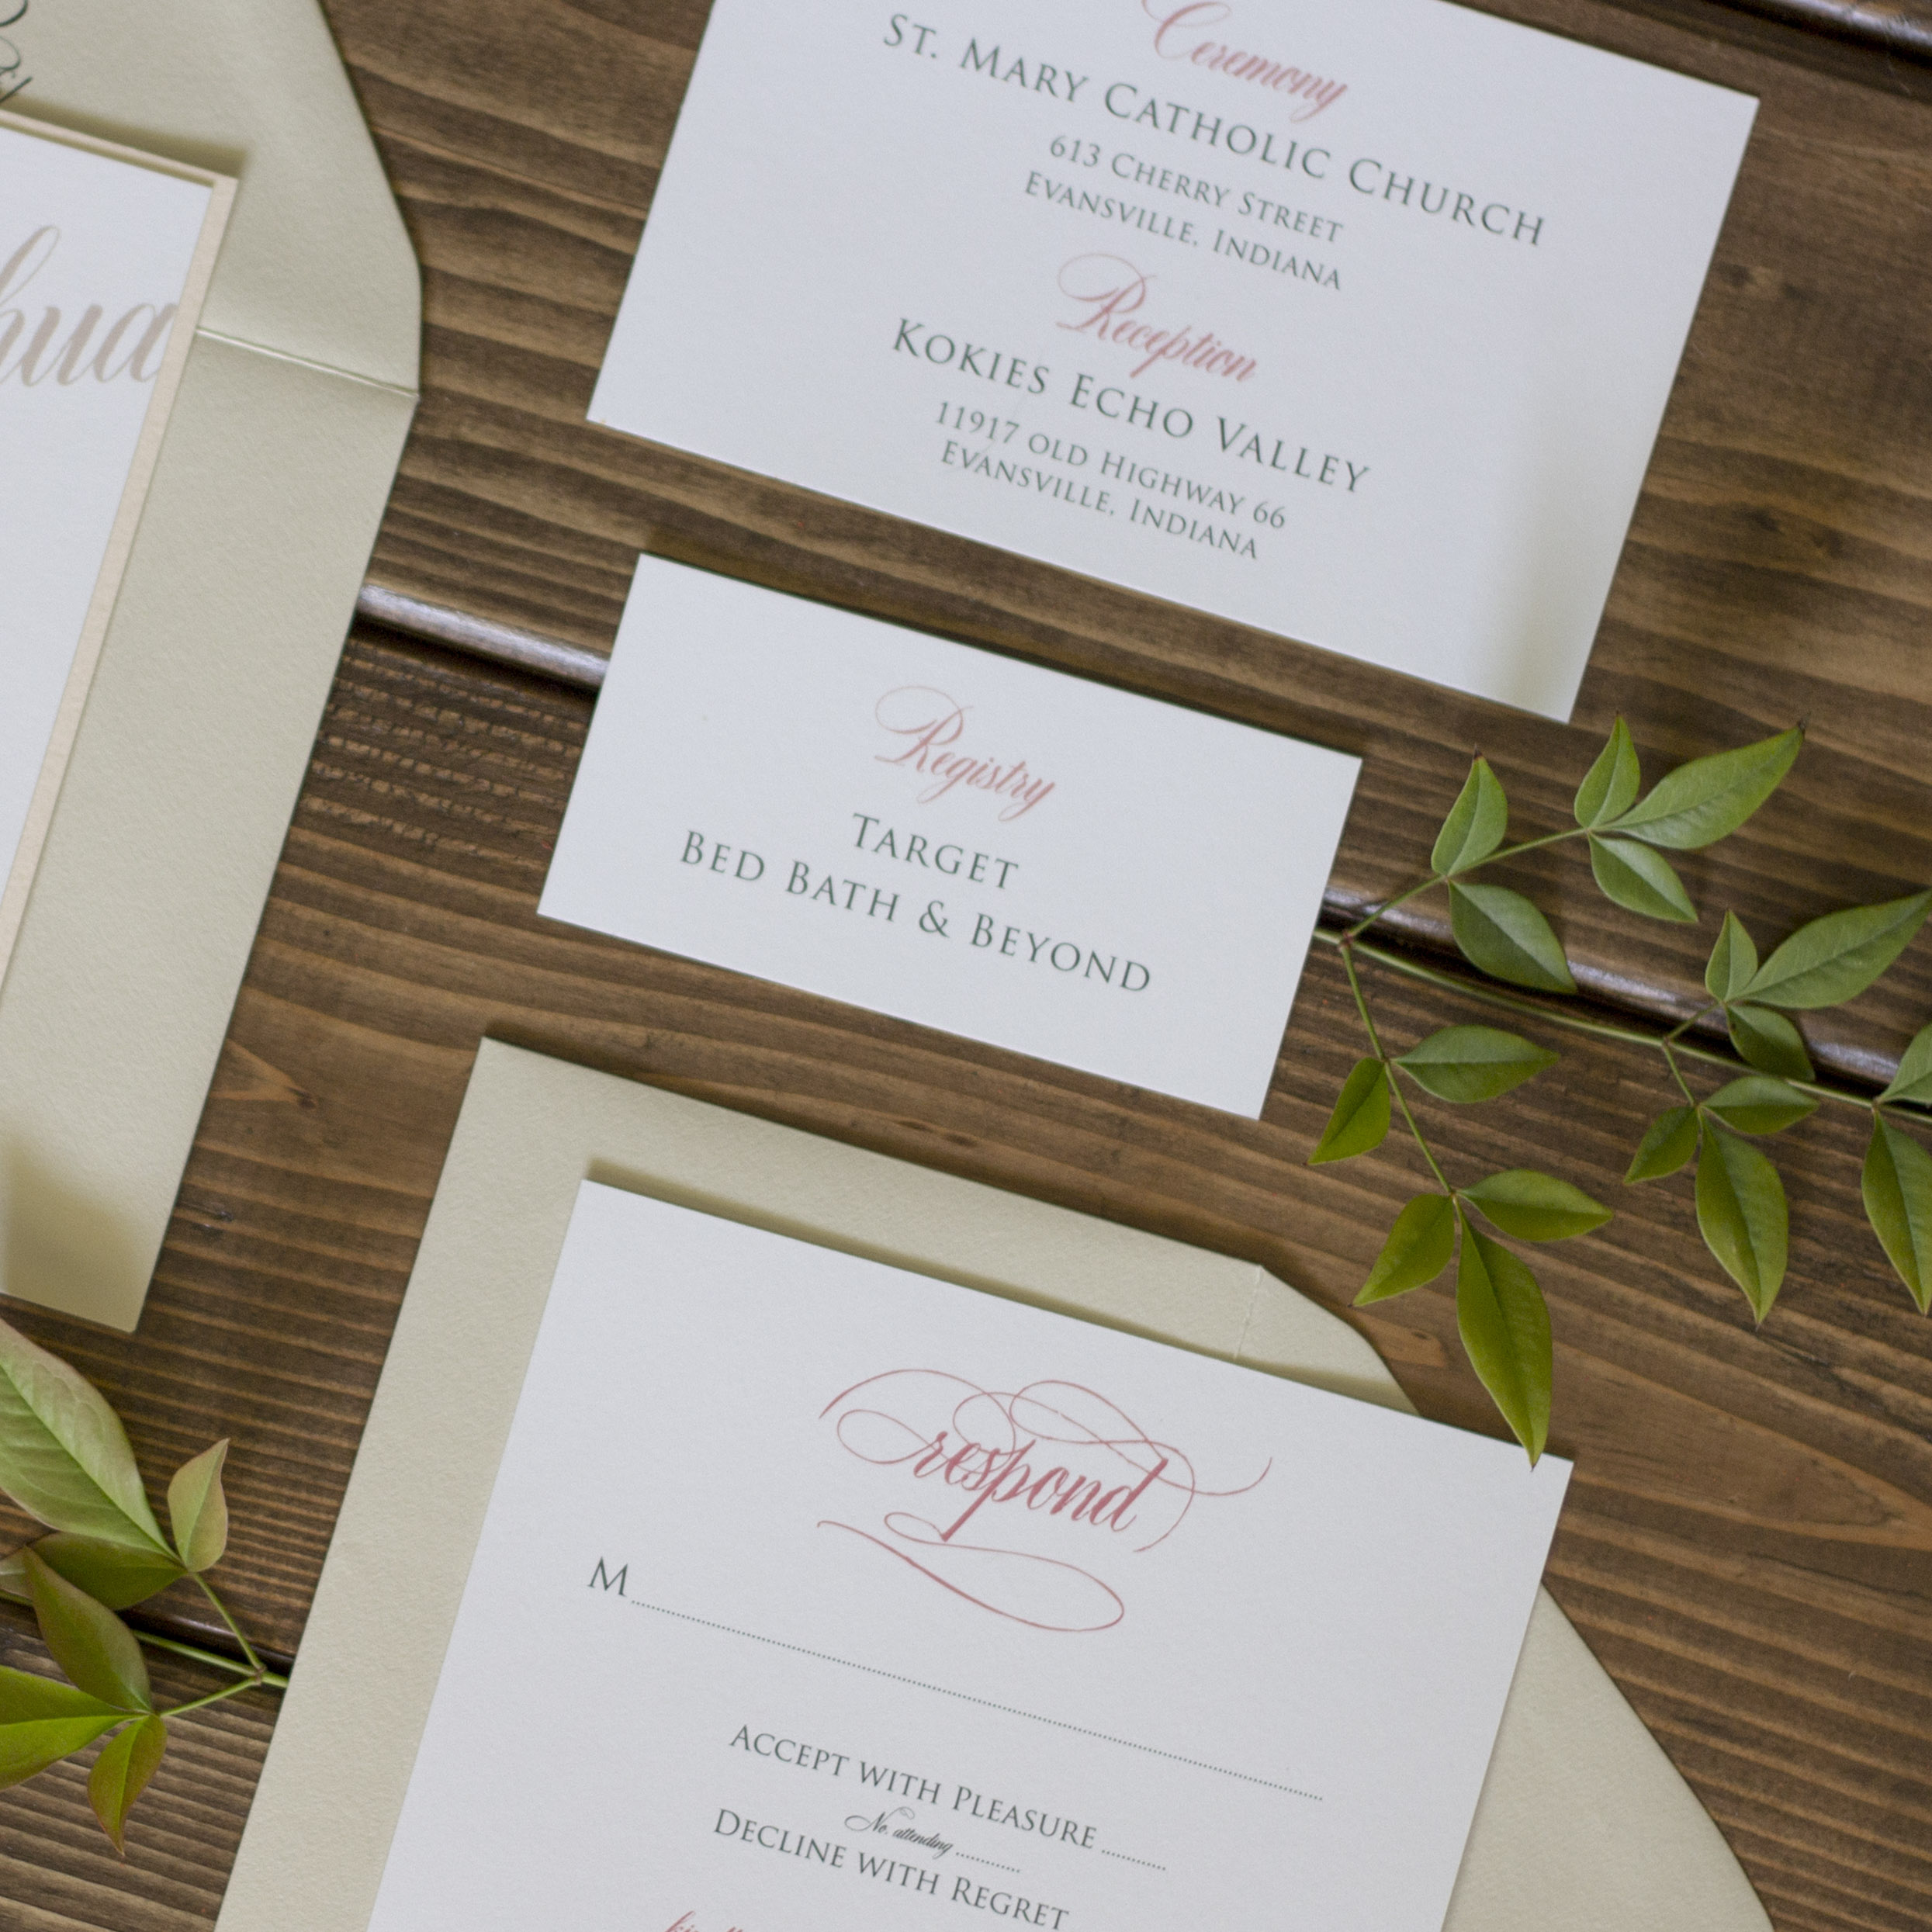 script-wedding-invitations-evansviile-indiana3